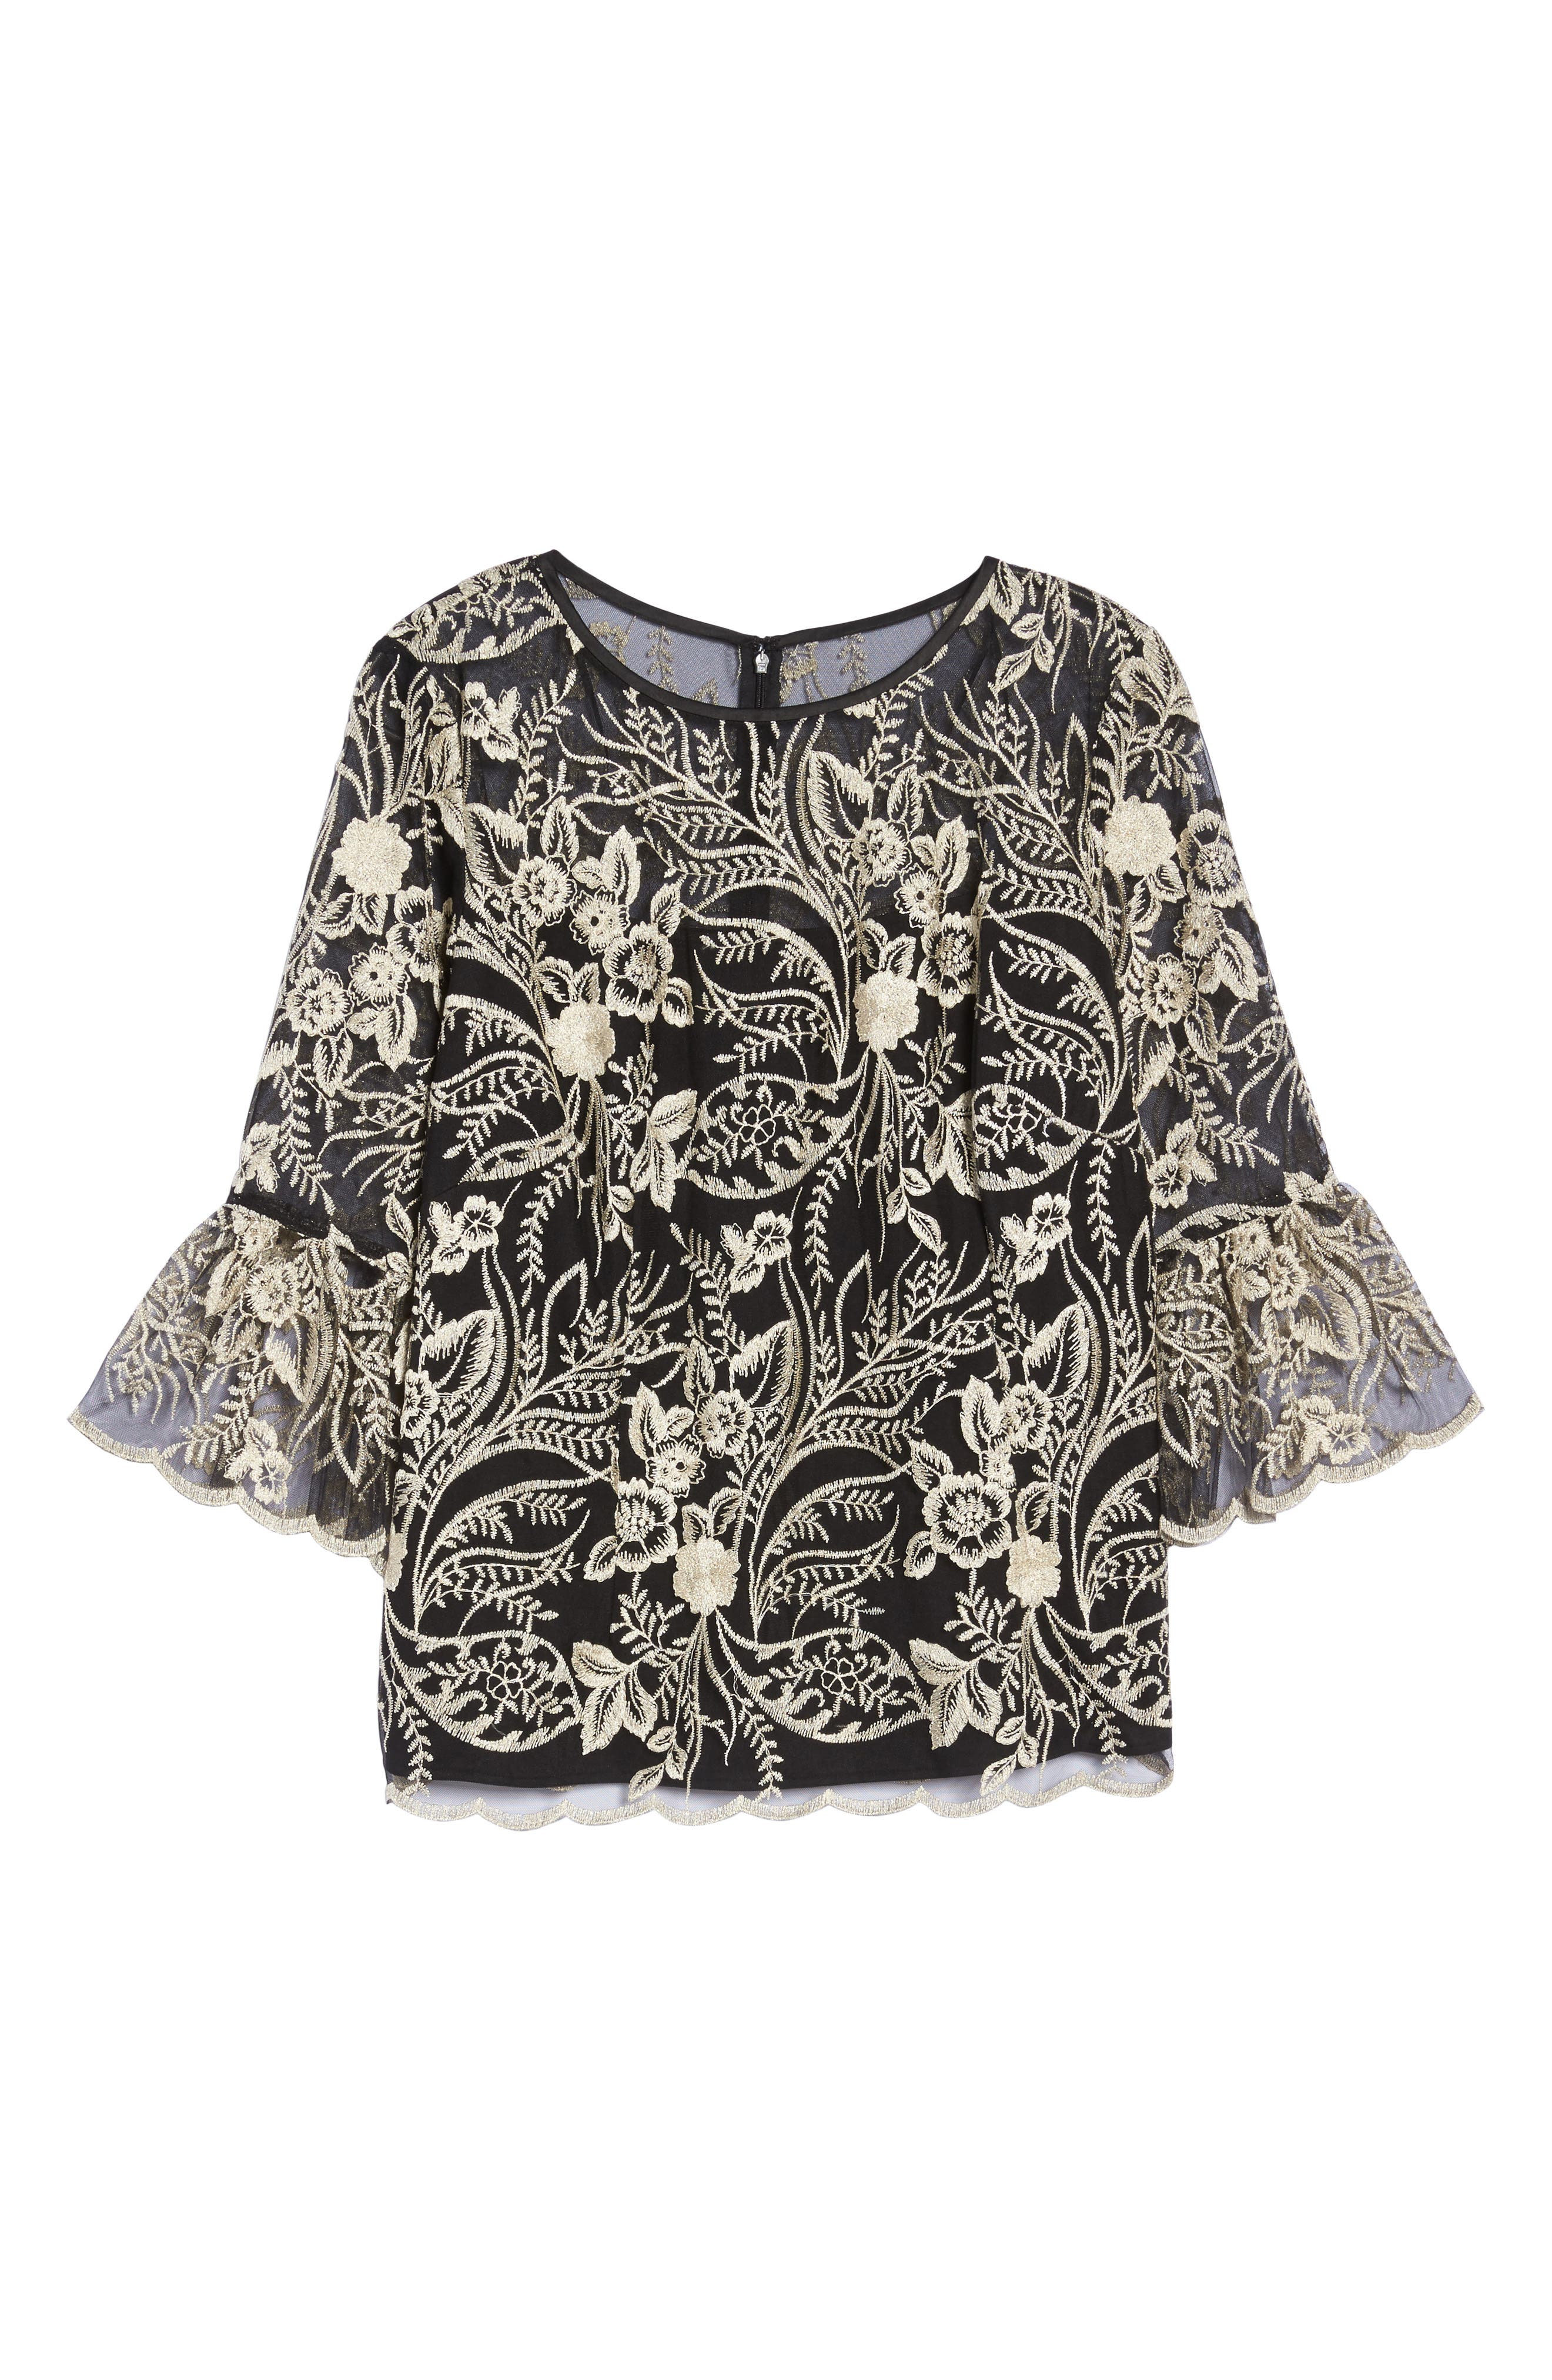 Embroidered Bell Sleeve Blouse,                             Alternate thumbnail 6, color,                             Black/ Champagne